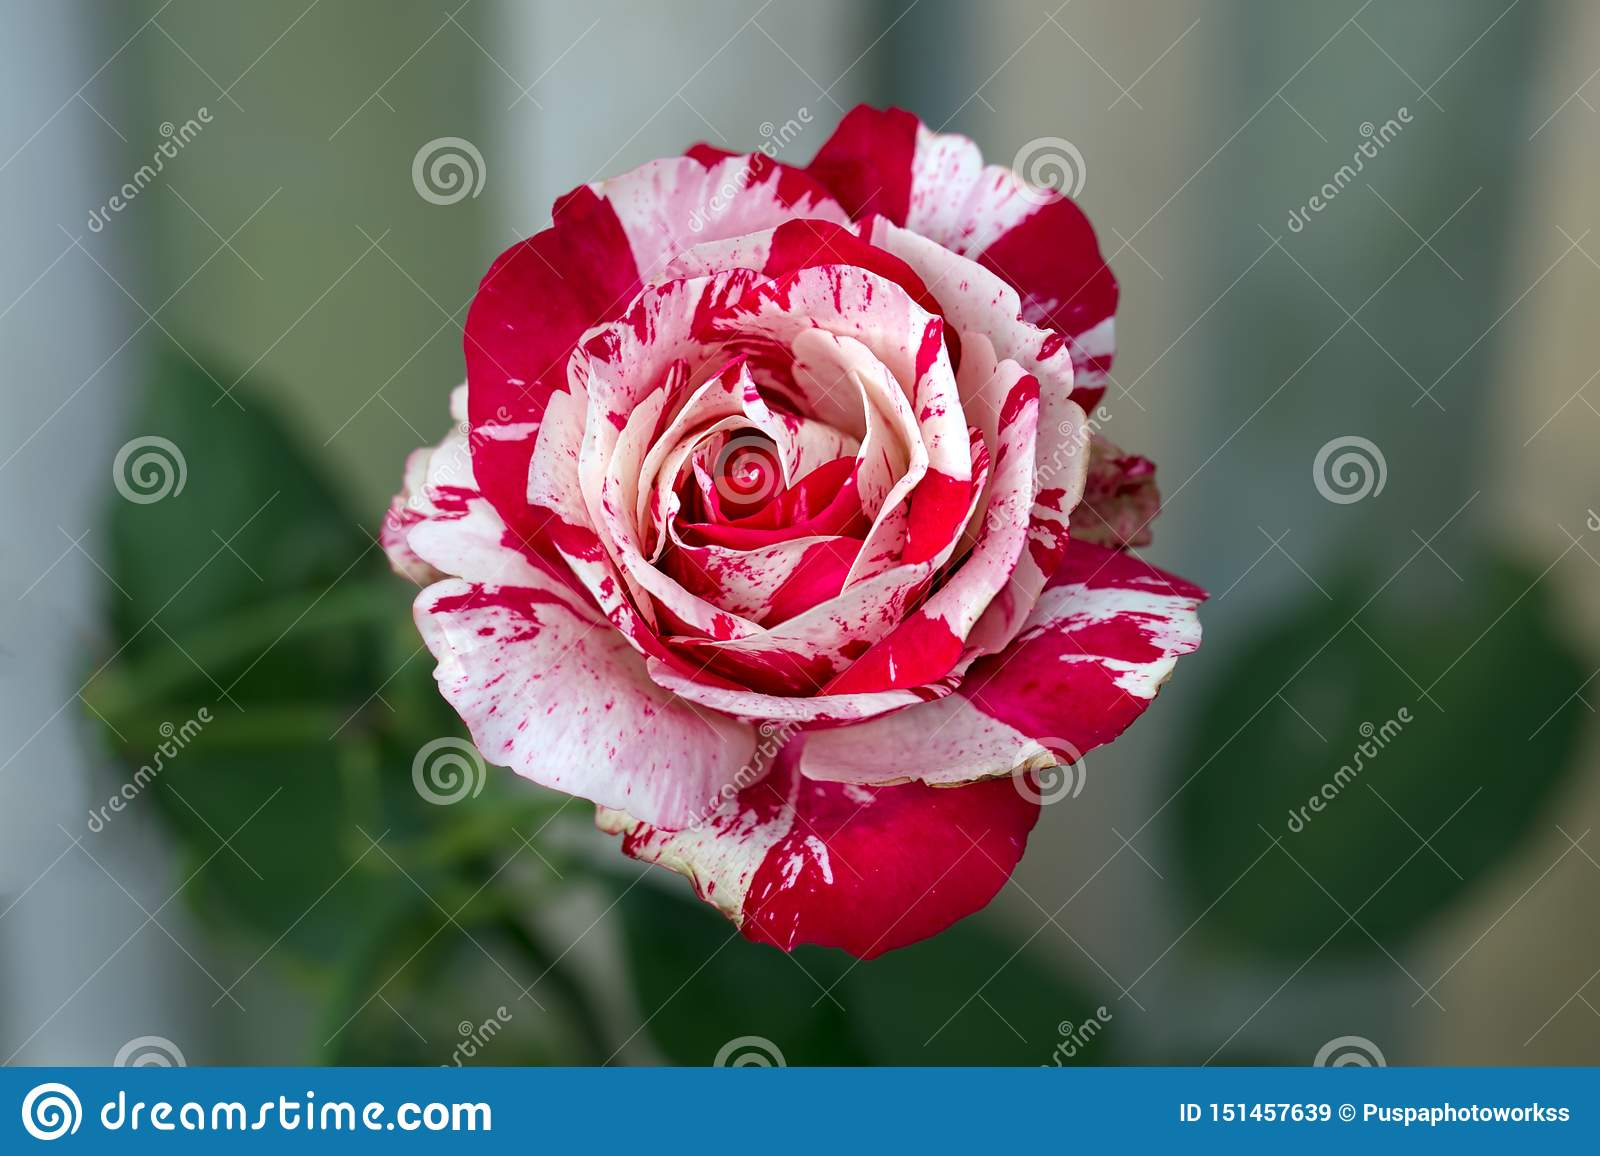 Red White Batik Roses With Green Blurry Background.. Just Say With Flower and Bright Your Day.